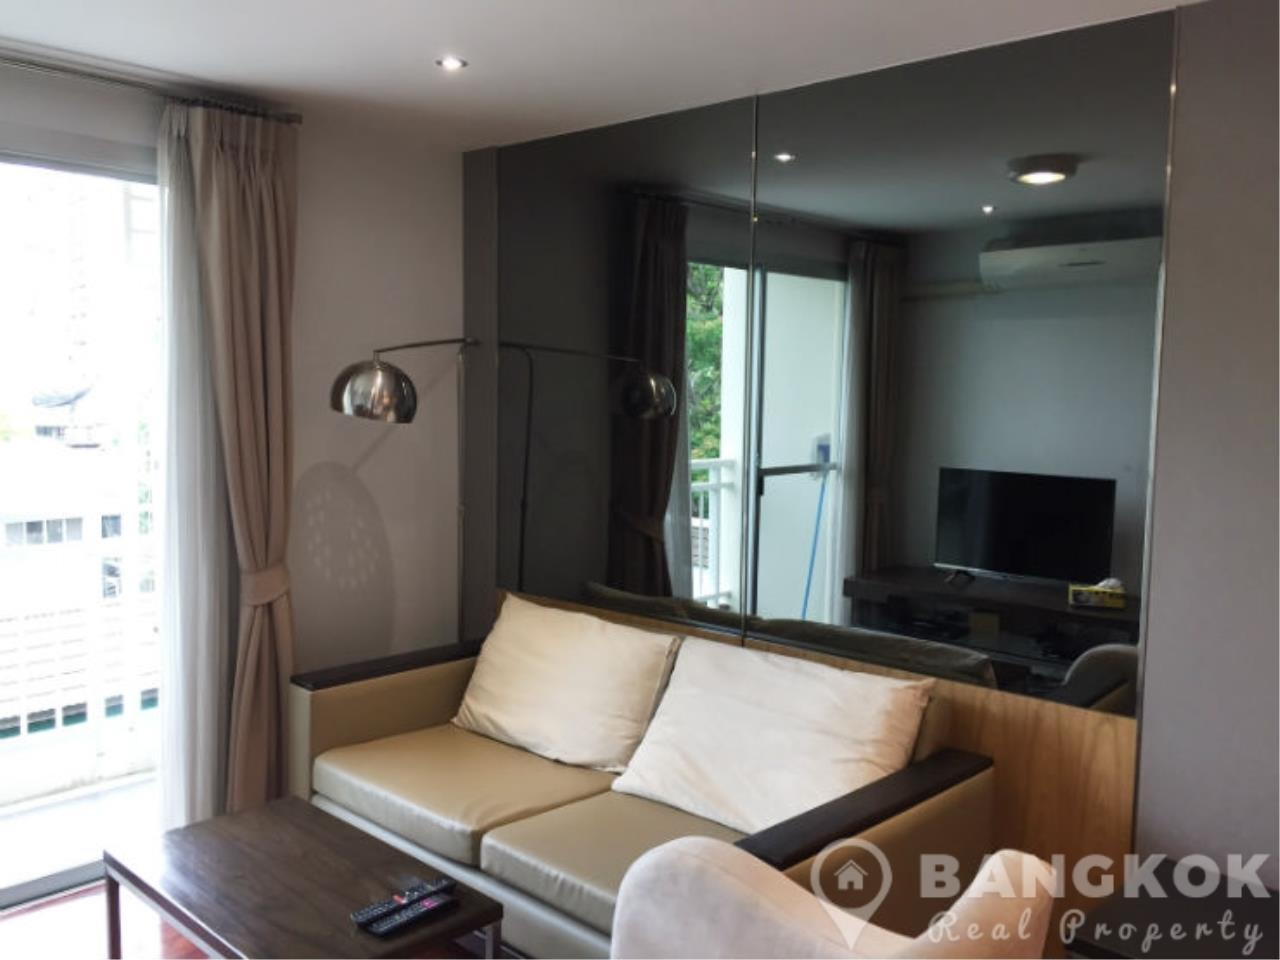 Bangkok Real Property Agency's 49 Plus | Spacious High Floor 1 Bed 1 Bath in Thonglor 3